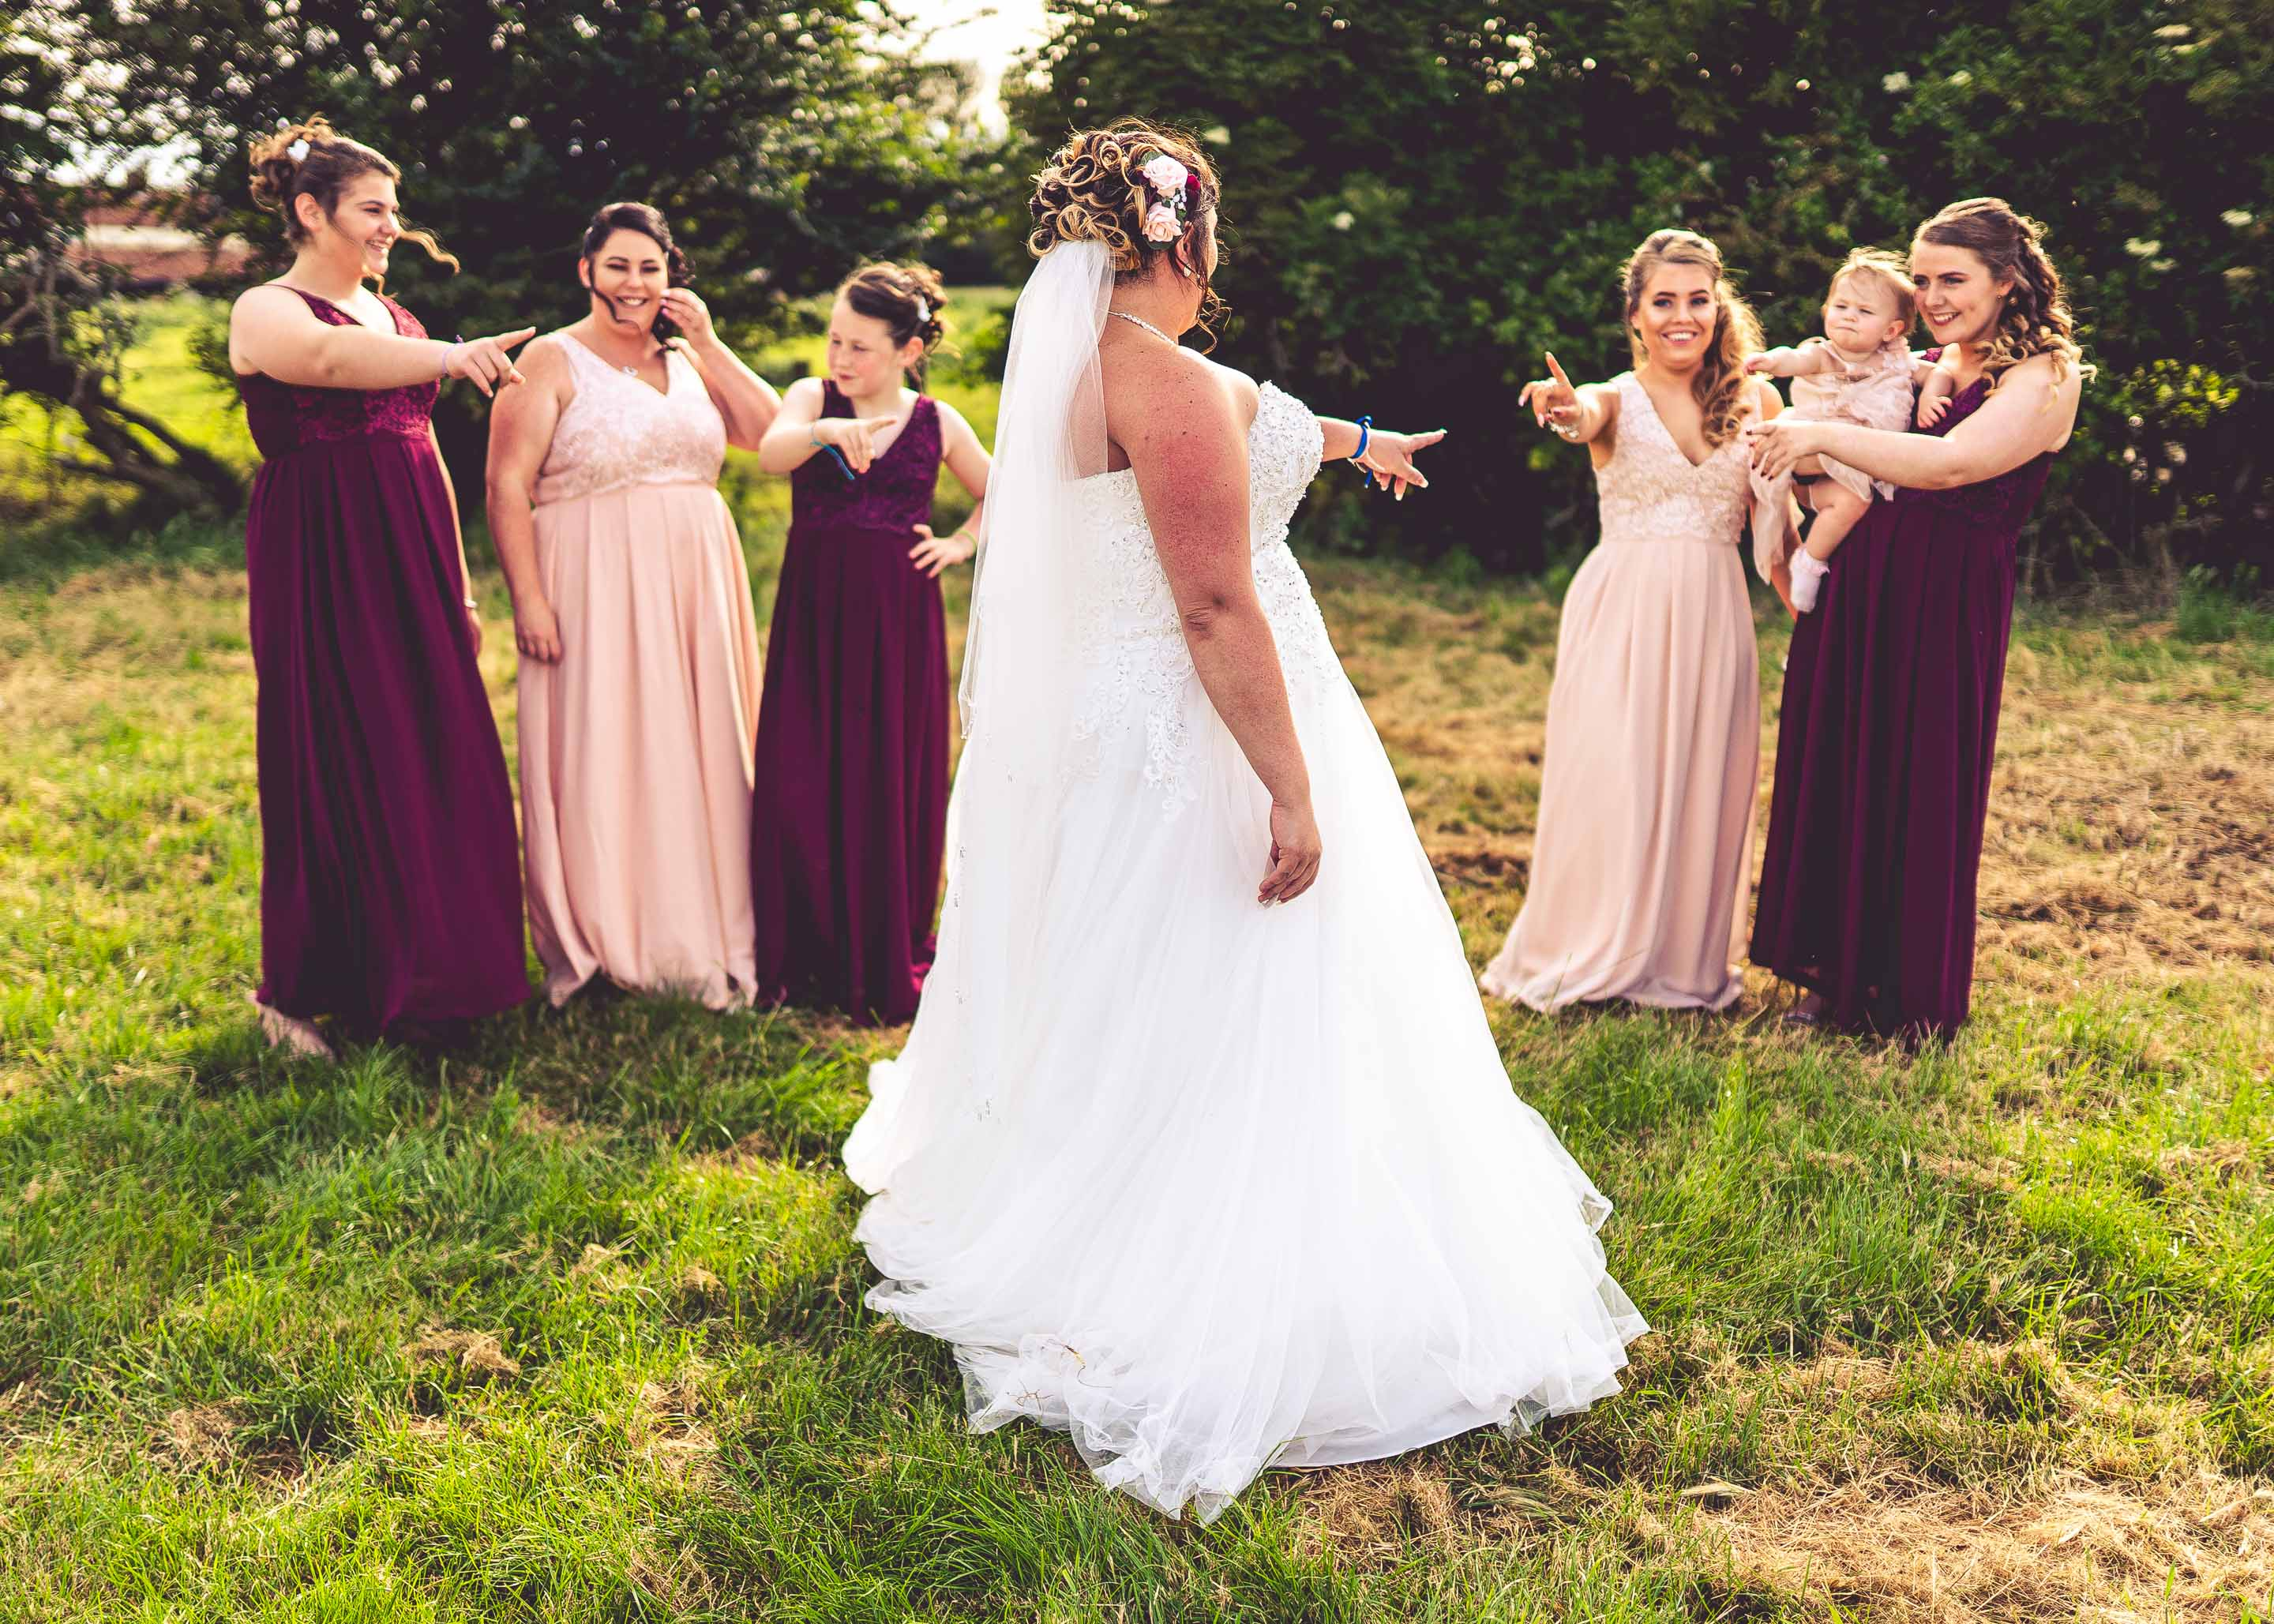 L&L-Olliemweddings.com-240